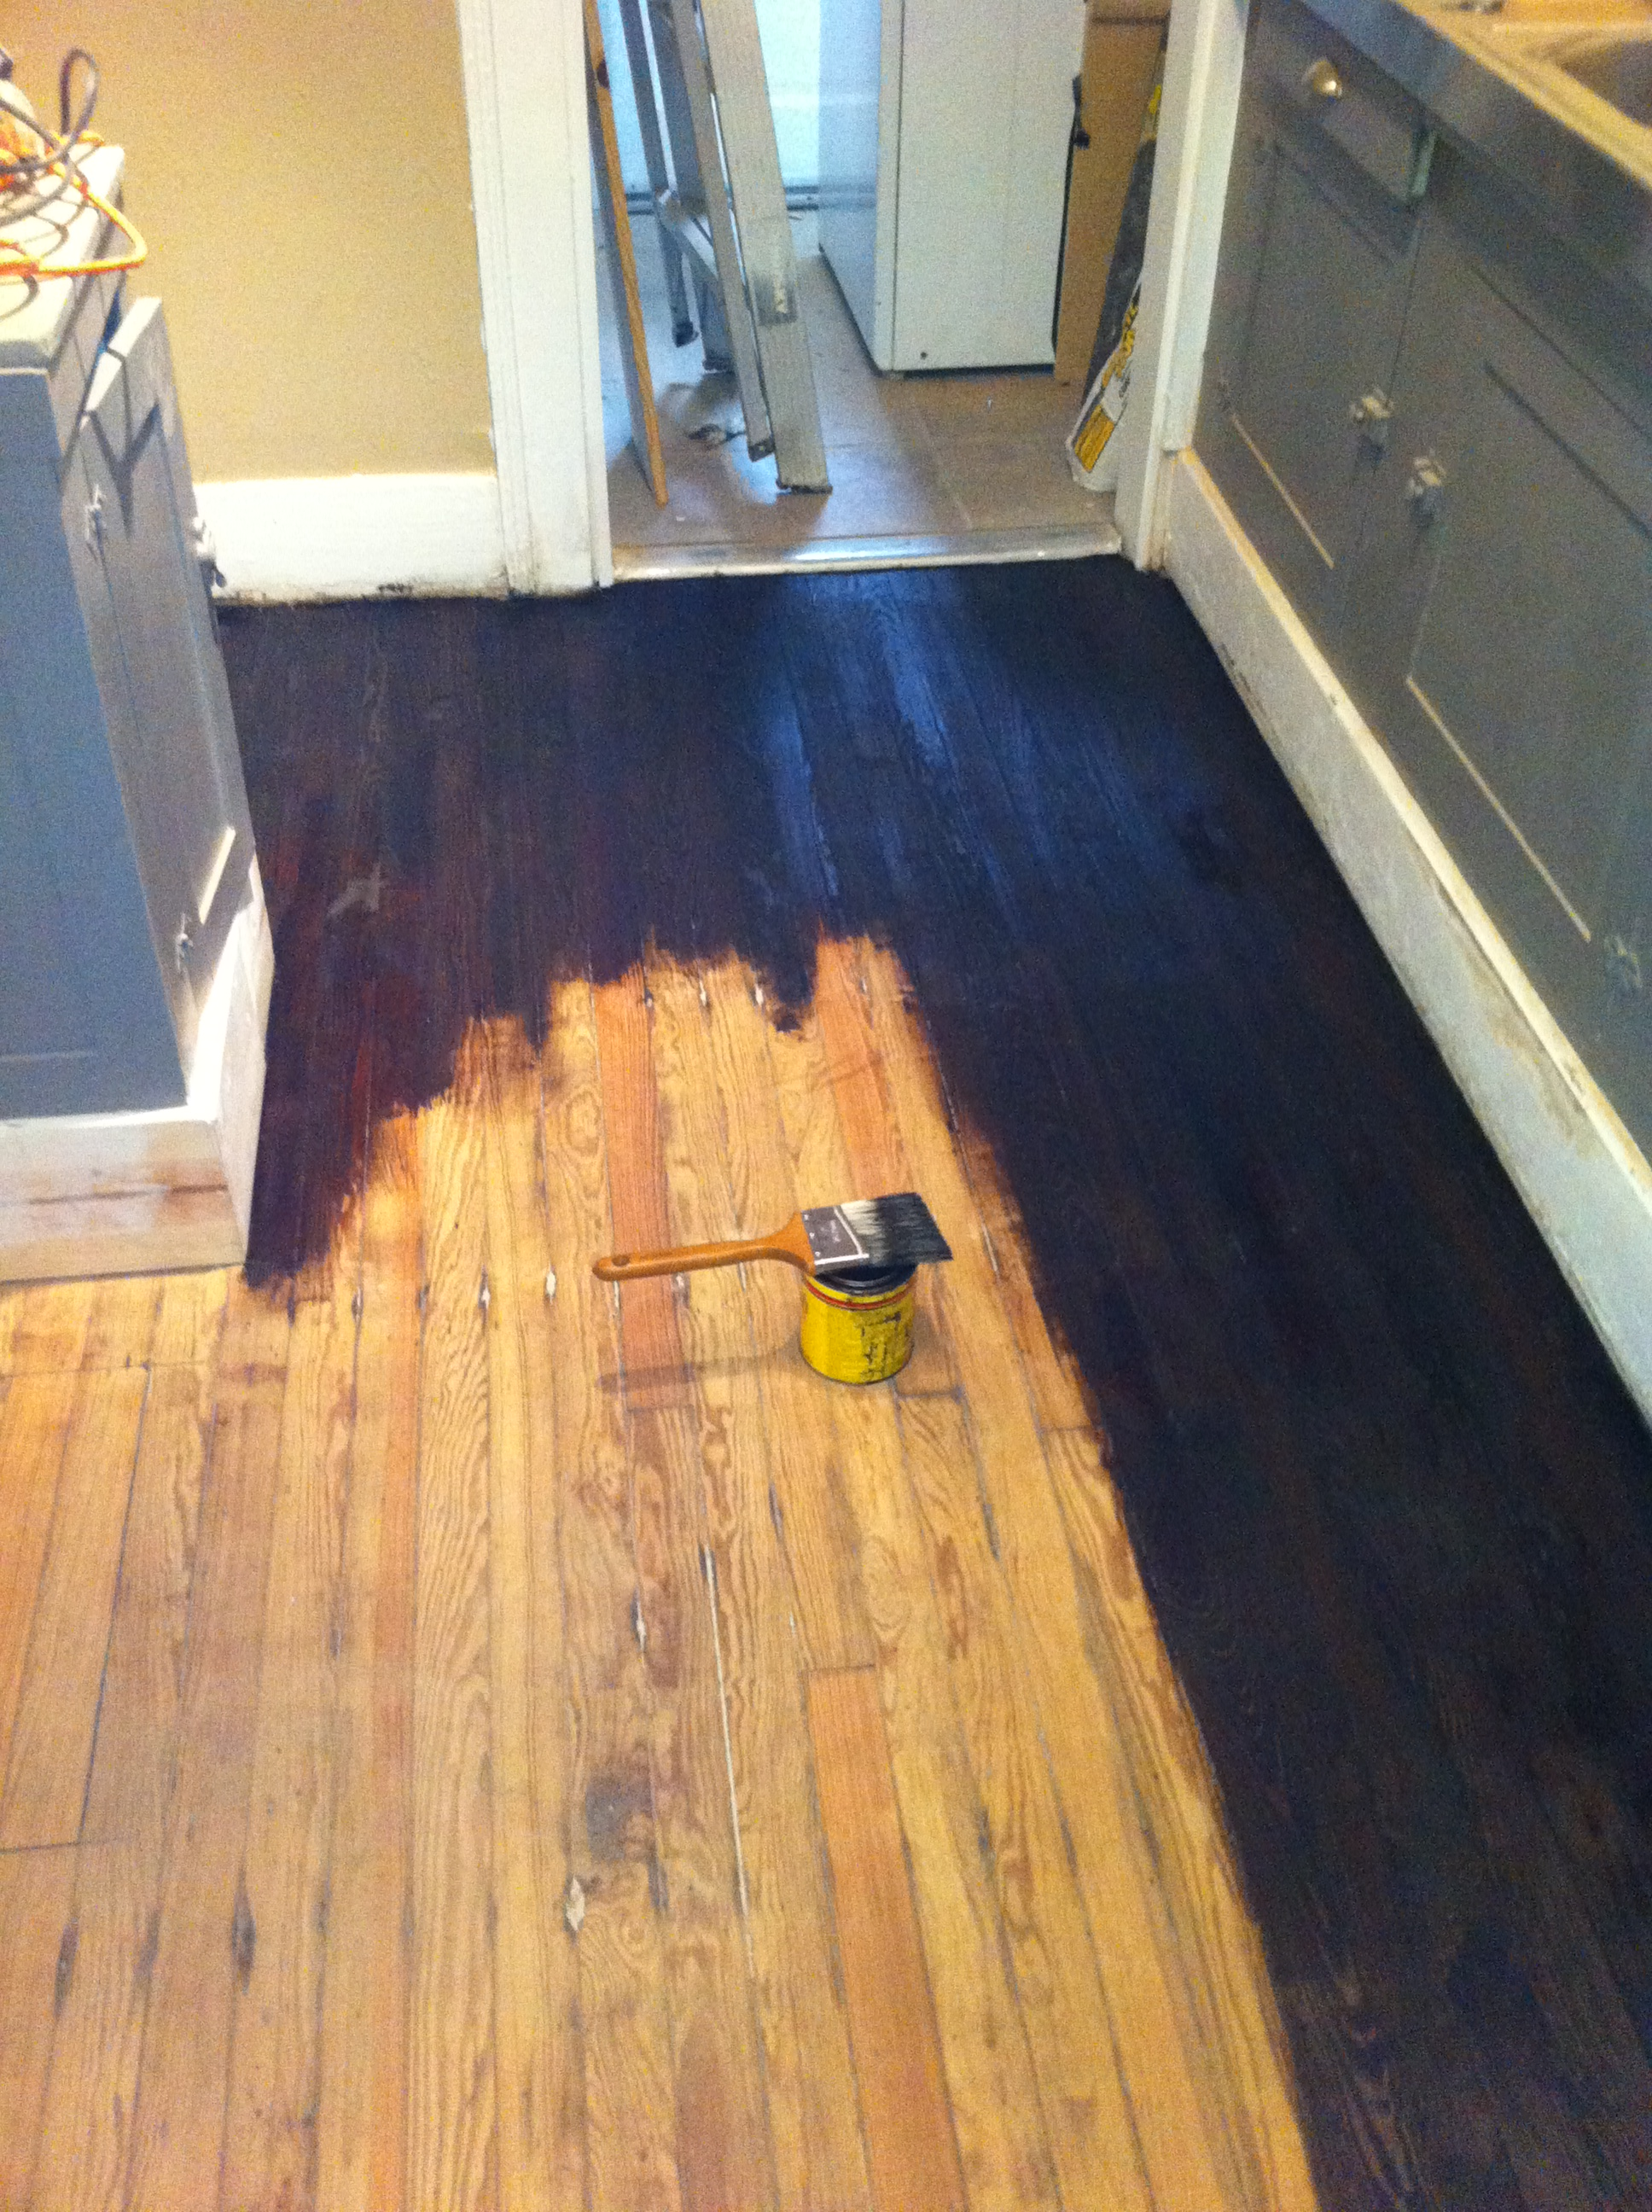 How to refinish hardwood floors part 2 stain and seal for Staining hardwood floors